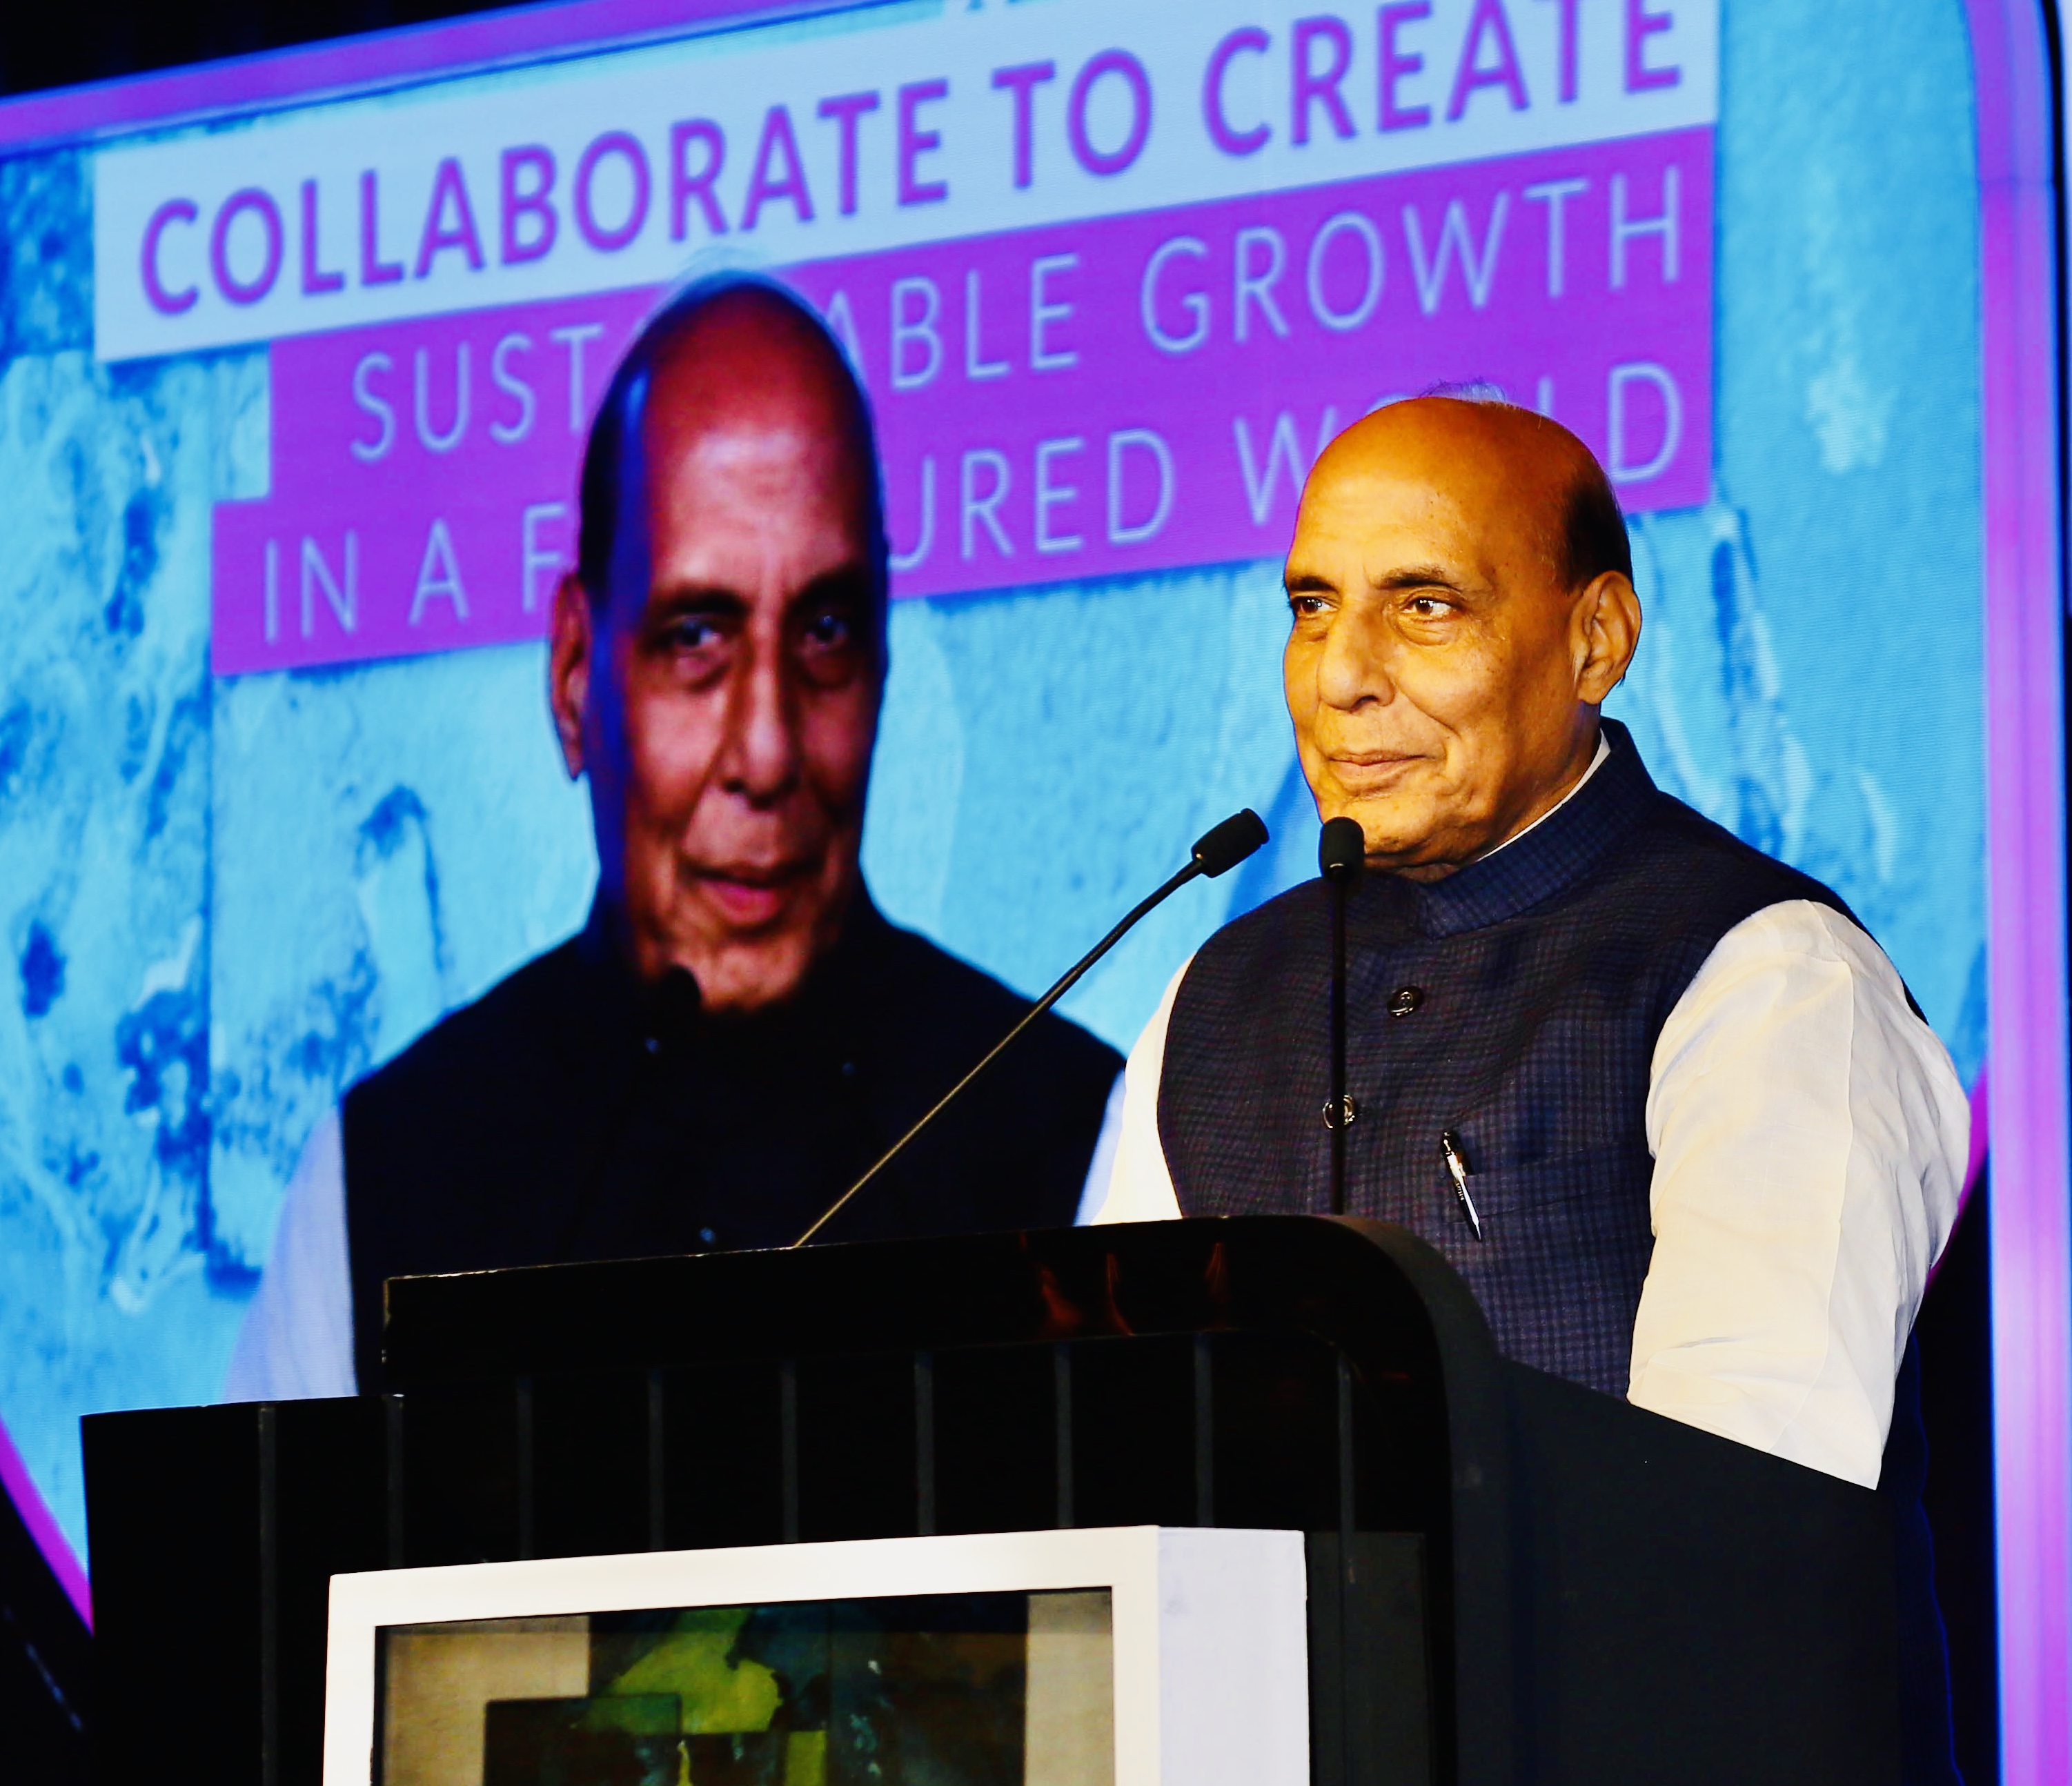 Aims to double Aeronautics industry to Rs 60,000 crore by 2024: Rajnath